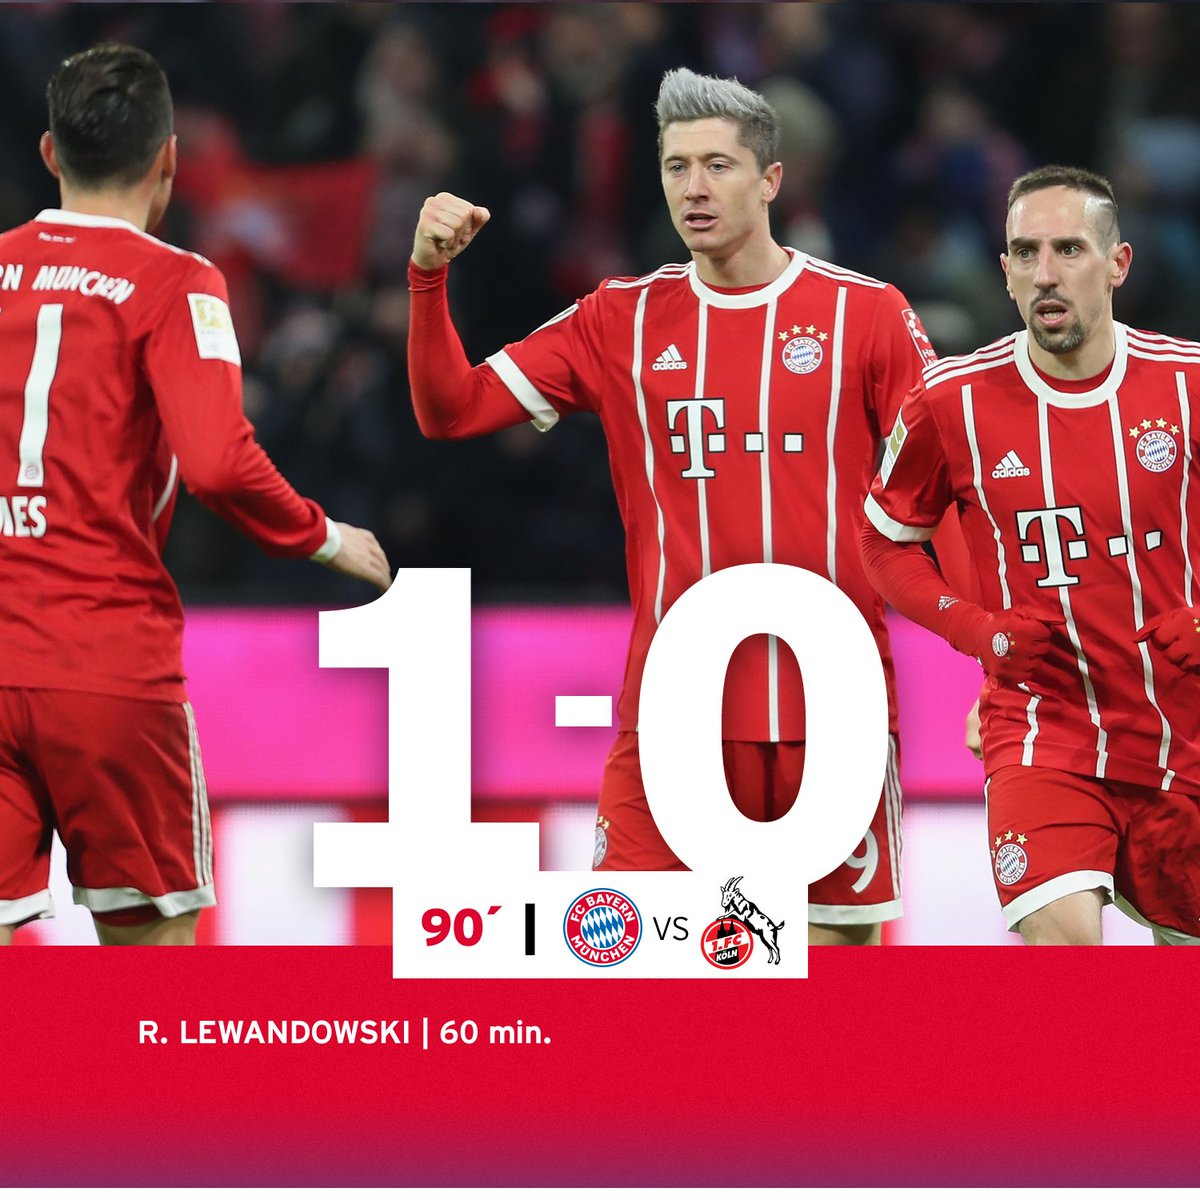 RT @FCBayernEN: Three points!!! That'll do nicely 👌 #FCBKOE 1-0 https://t.co/QPOS91BoXZ